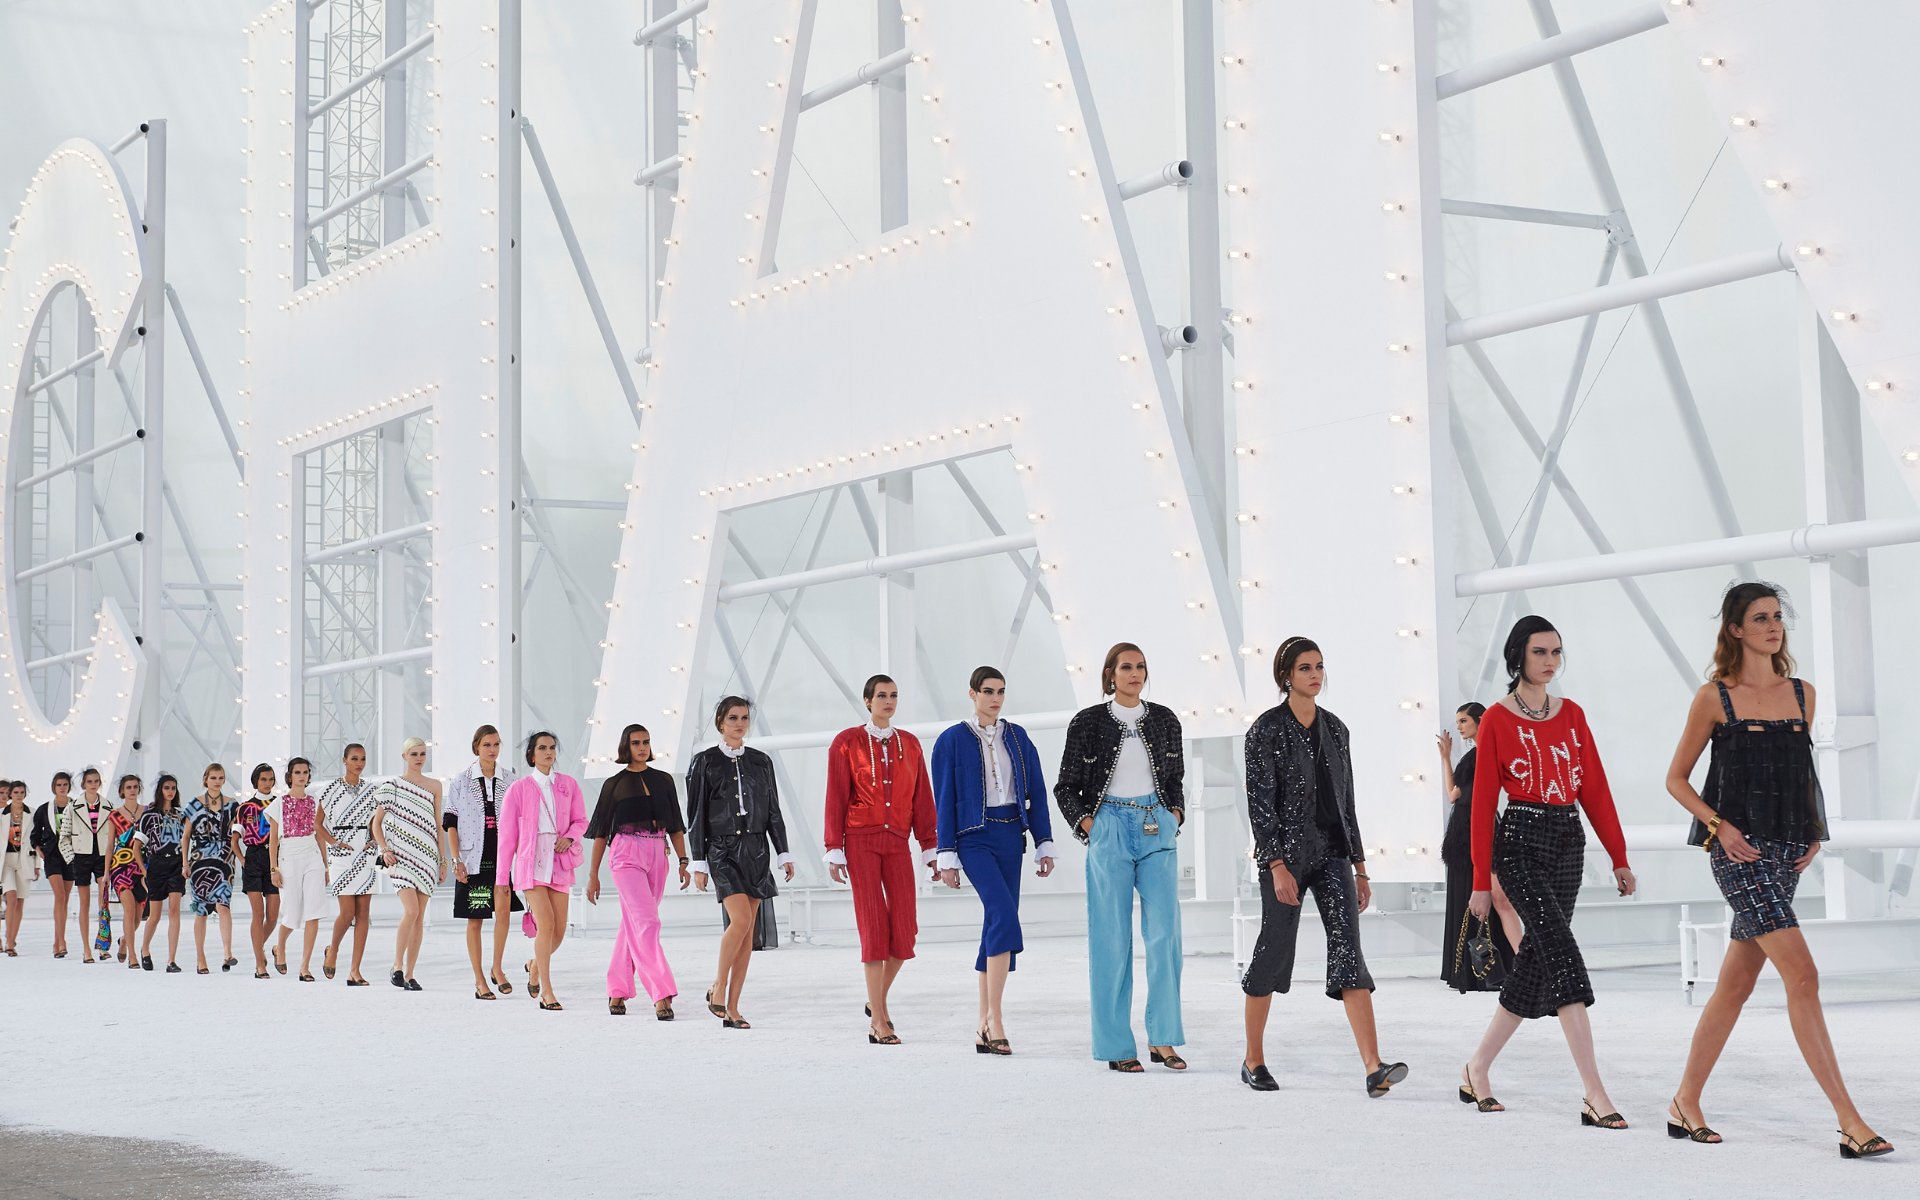 The Best Looks From Chanel SS 2021 Hollywood-Inspired Runway Show